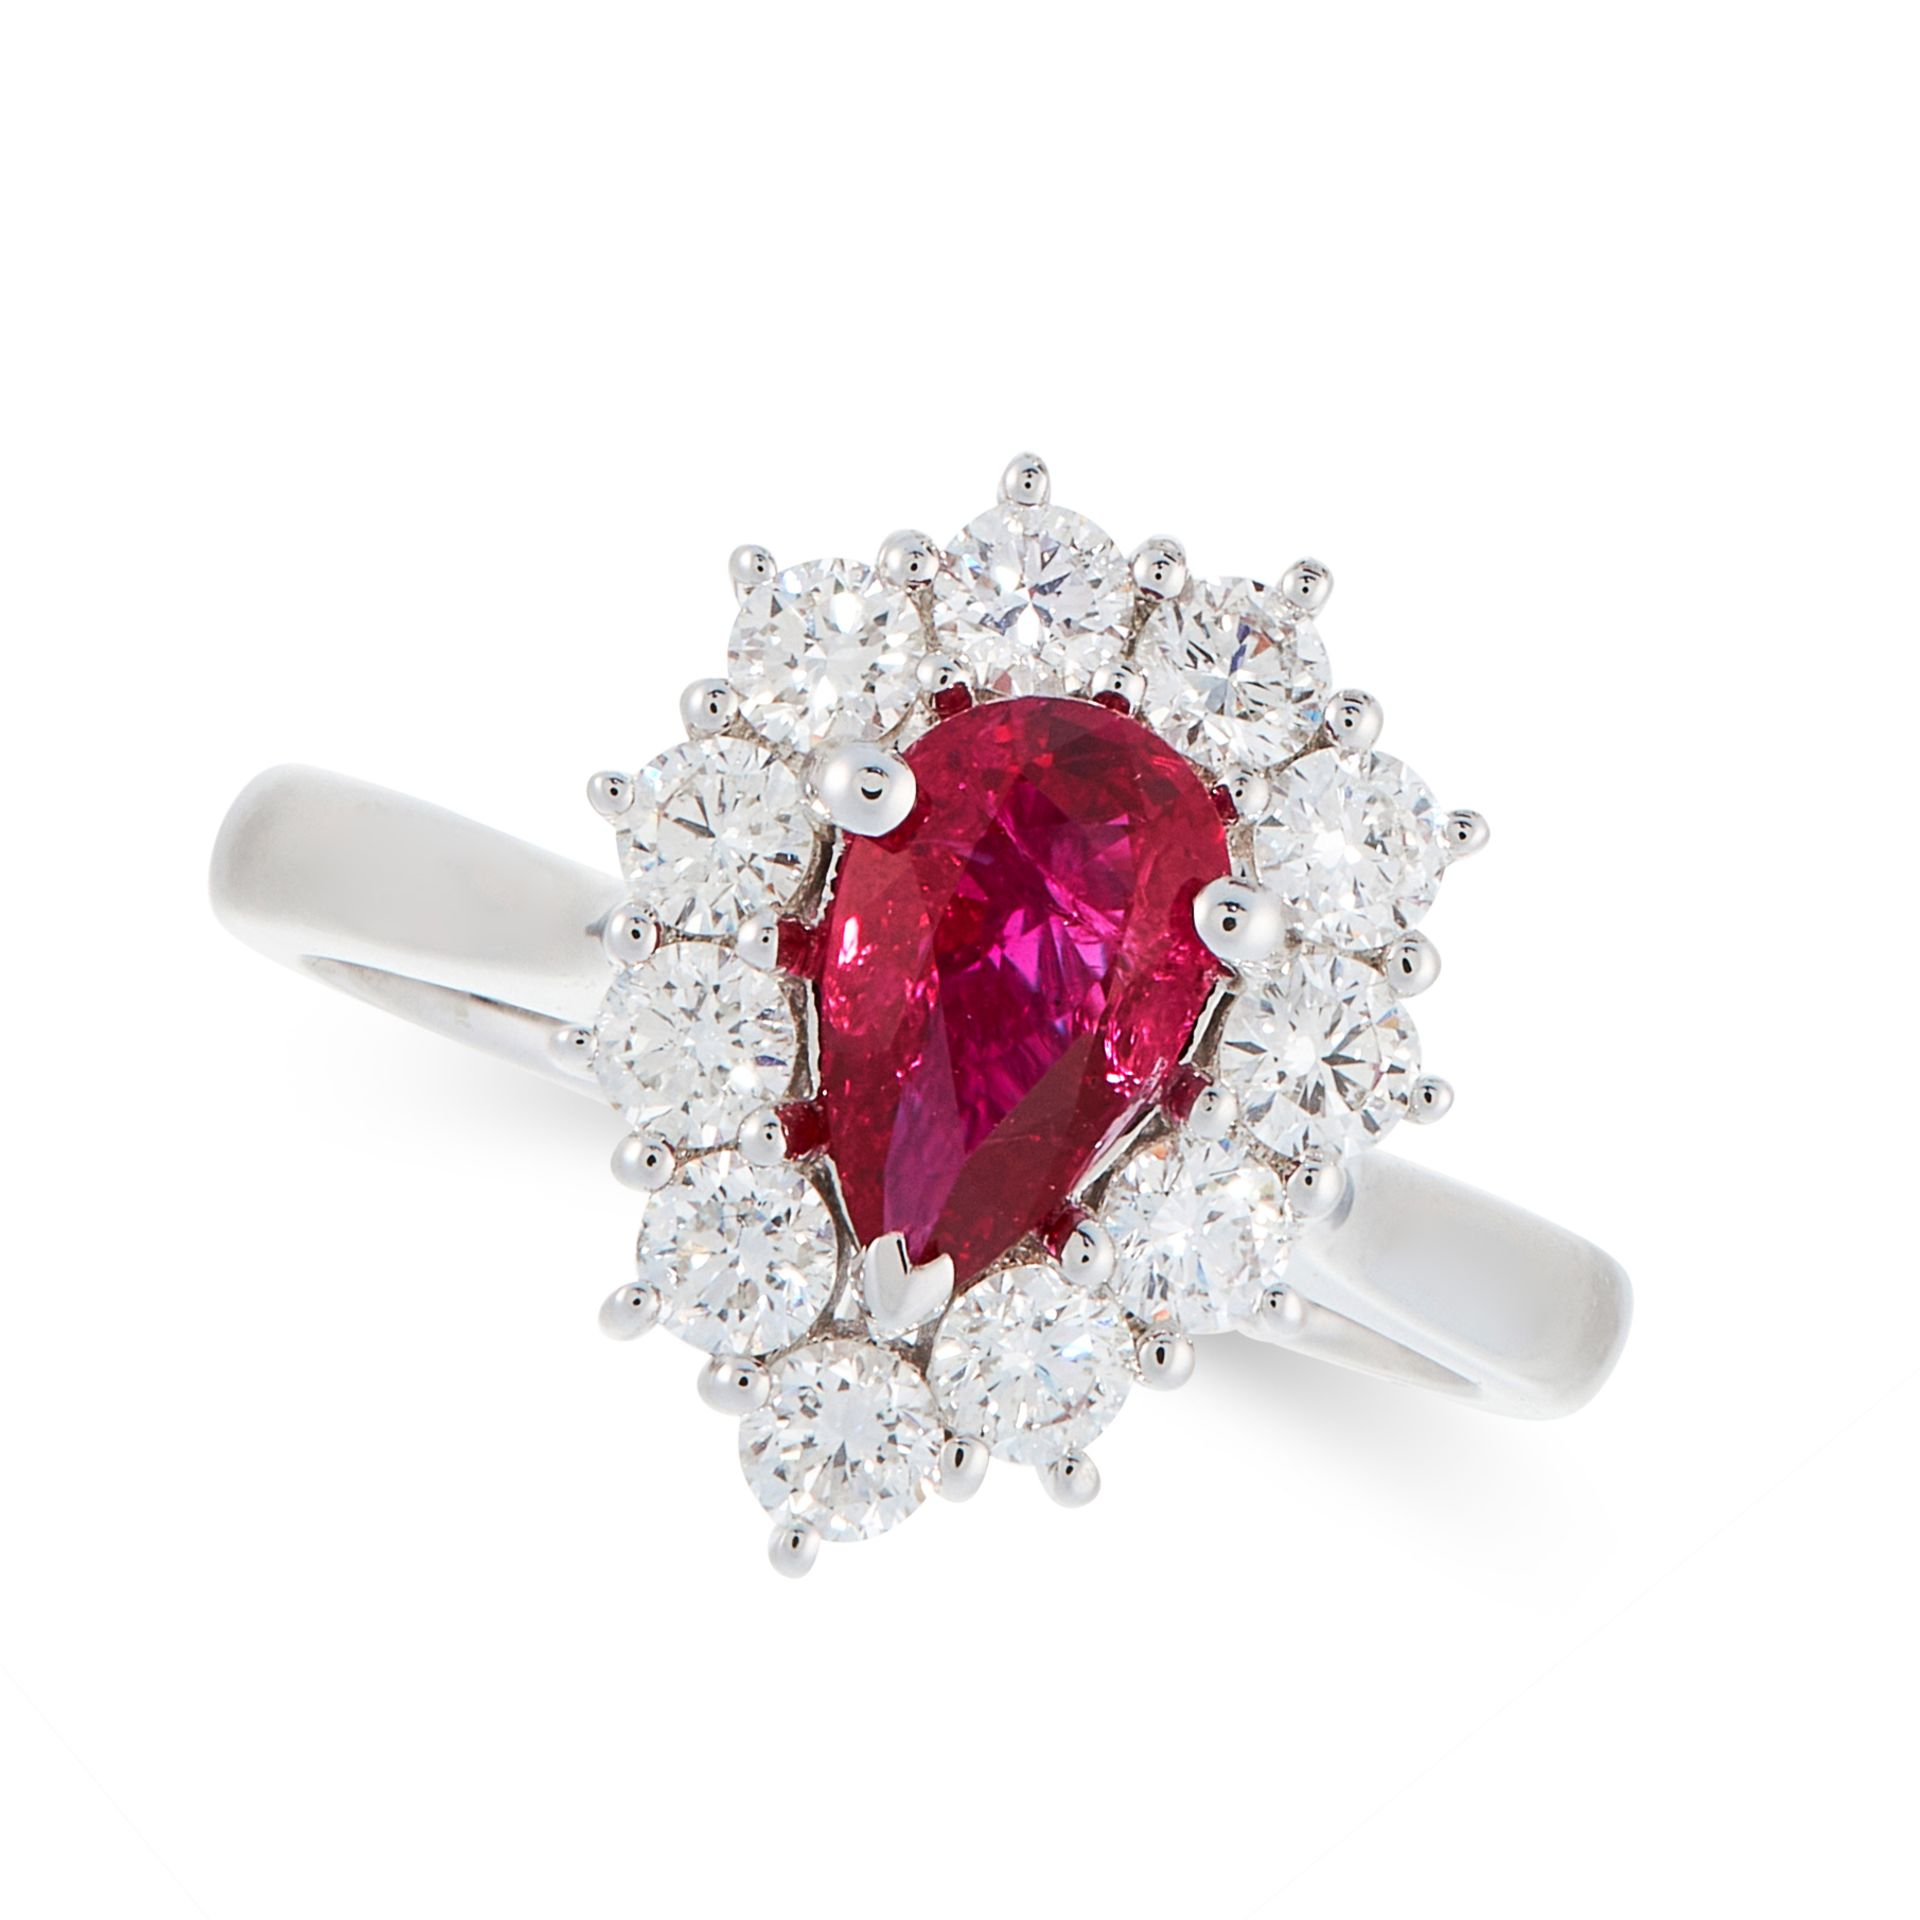 A BURMA NO HEAT RUBY AND DIAMOND DRESS RING in 18ct white gold, set with a pear cut ruby of 1.02